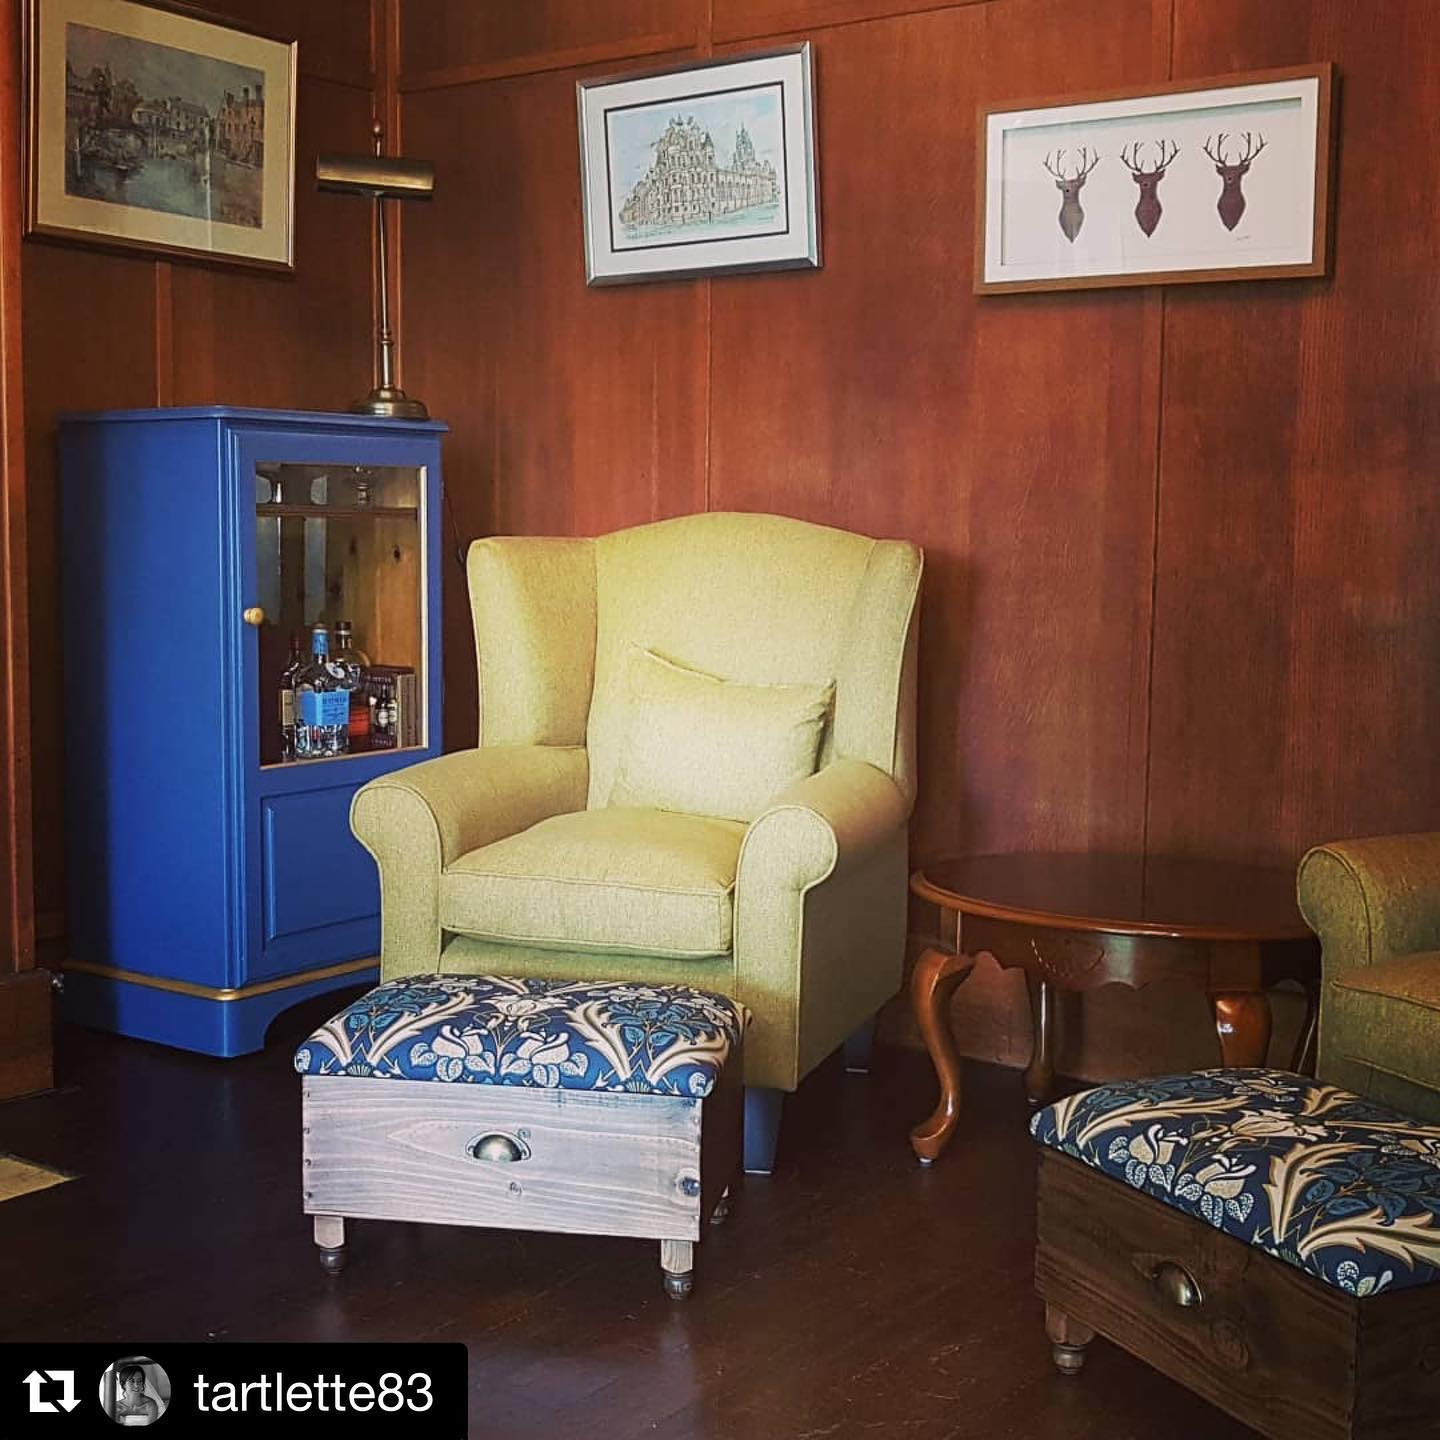 What a room!!!??! Great to see this post from a happy customer! ...#repostThis room is coming together nicely. Loving our new wine box ottomans from @gingerandtweed . They look amazing! #decor #interiors #interiordesign #woodpaneling #ottoman #drinkscabinet #traditionalmeetsmodern #nokidsallowed #1930shouse